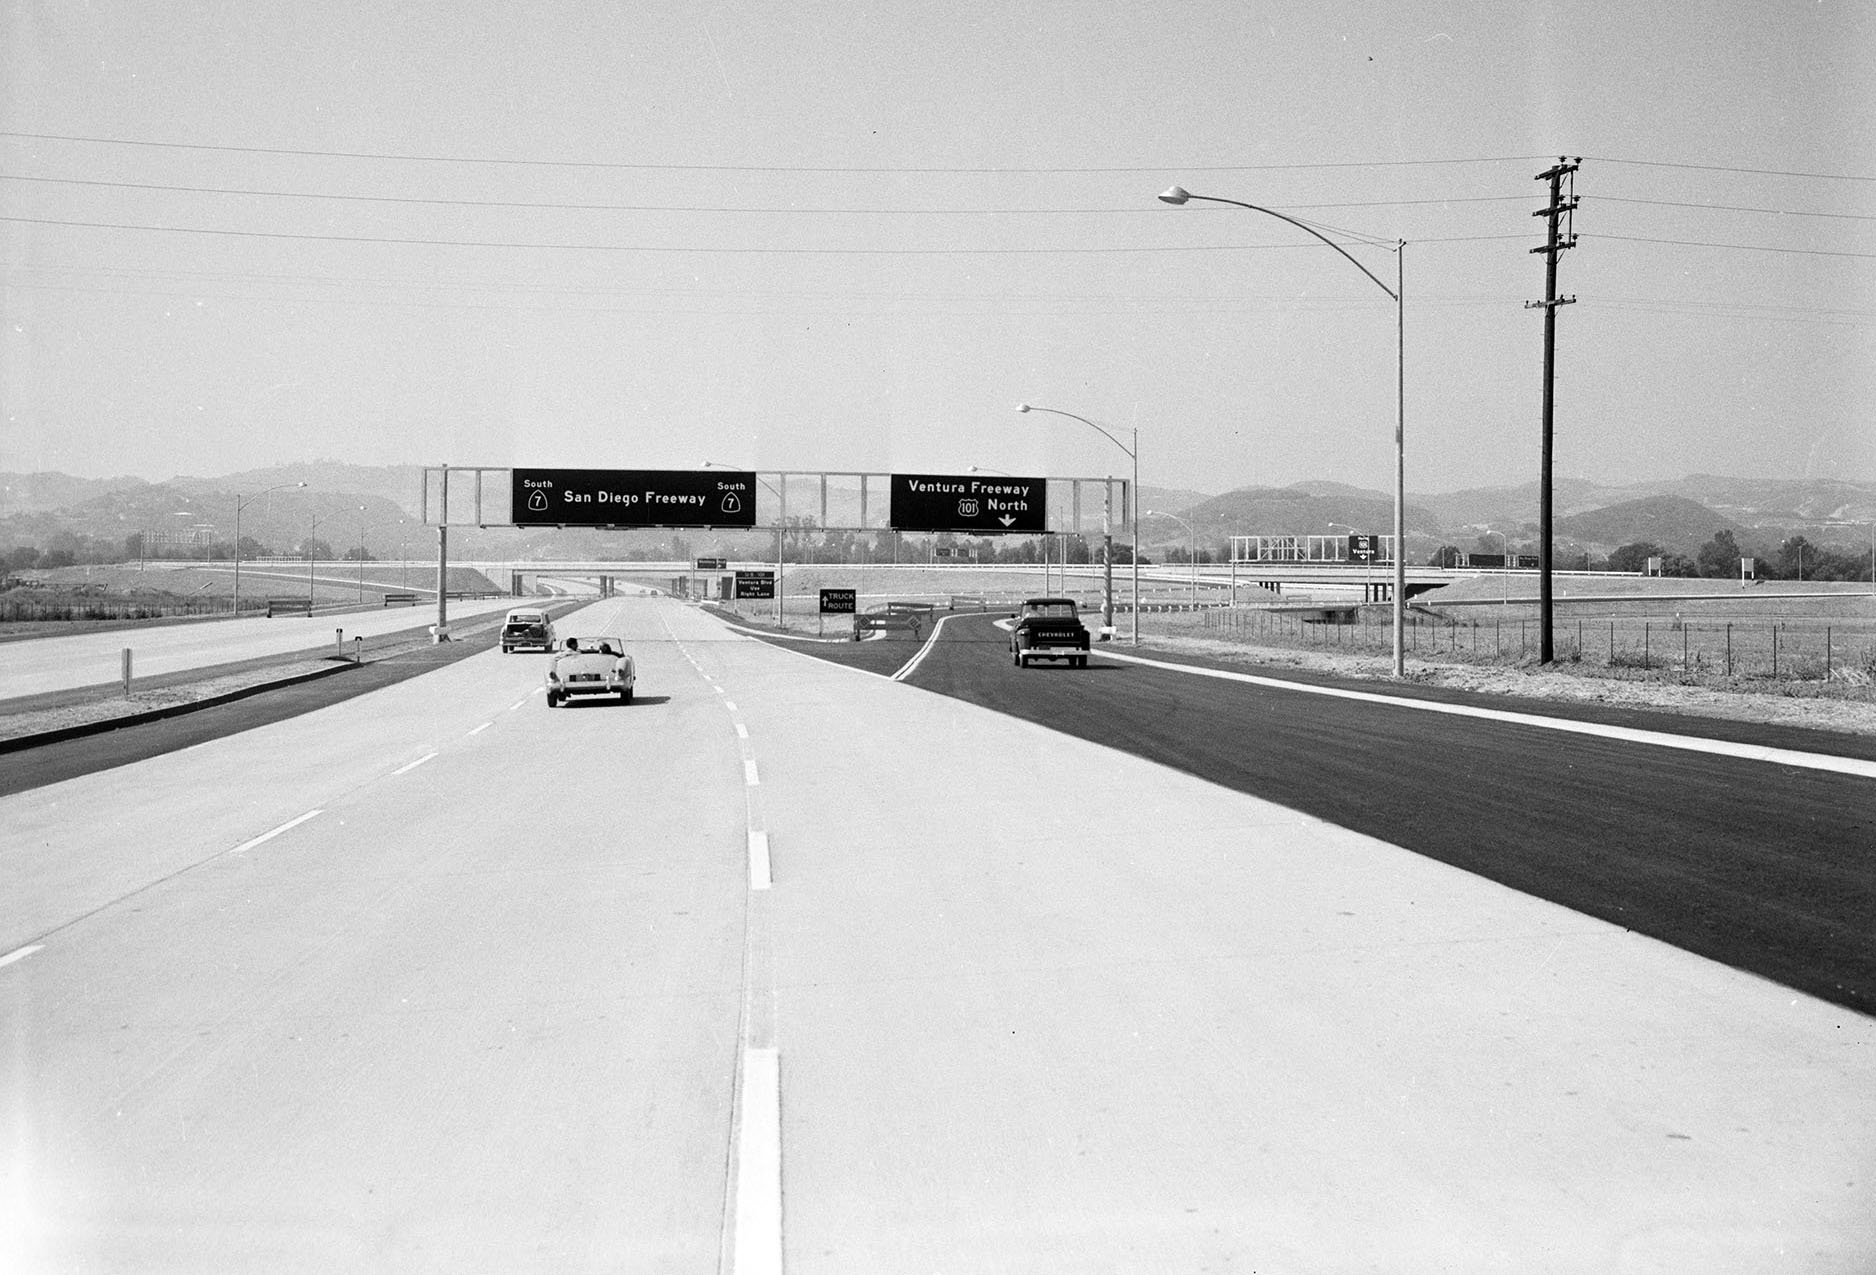 The concrete practically glistens in this 1958 photograph of the San Diego Freeway (then CA-7, now I-405), looking south at its junction with the Ventura Freeway, courtesy of the Los Angeles Examiner collection, USC Libraries